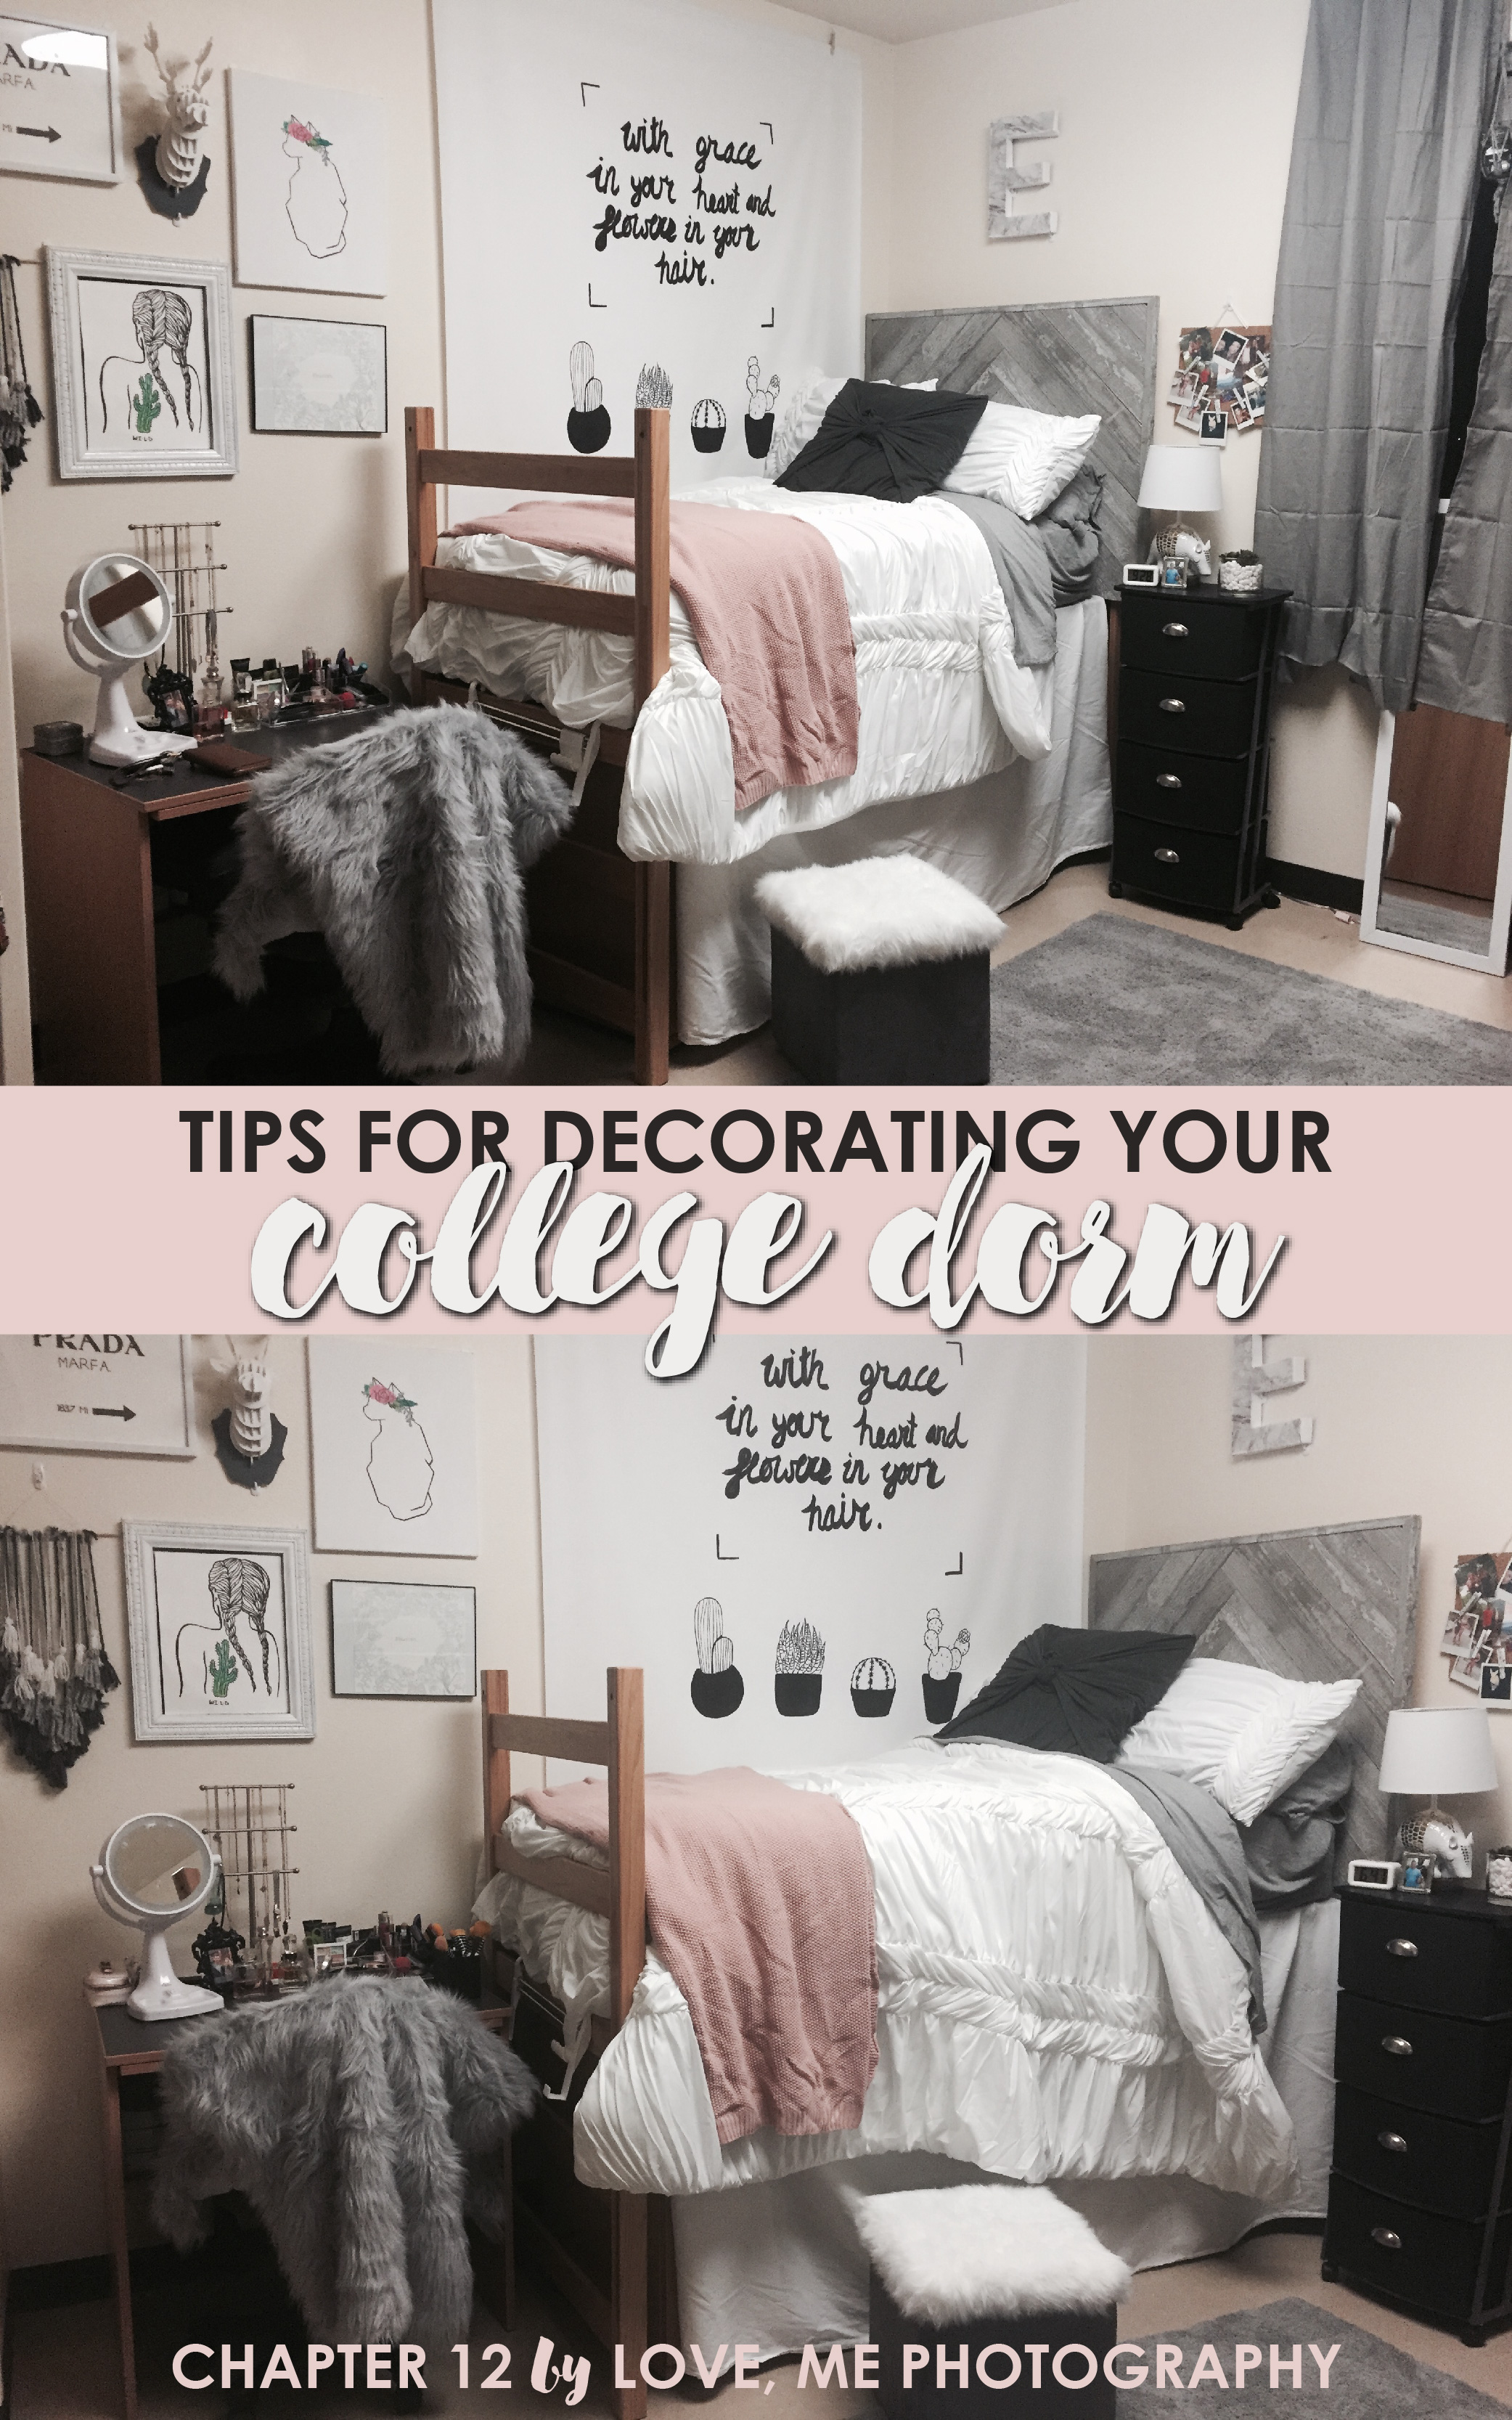 Creative Dorm Room Ideas To Make Your Space More Cozy Senior Portrait Photographer In Dallas